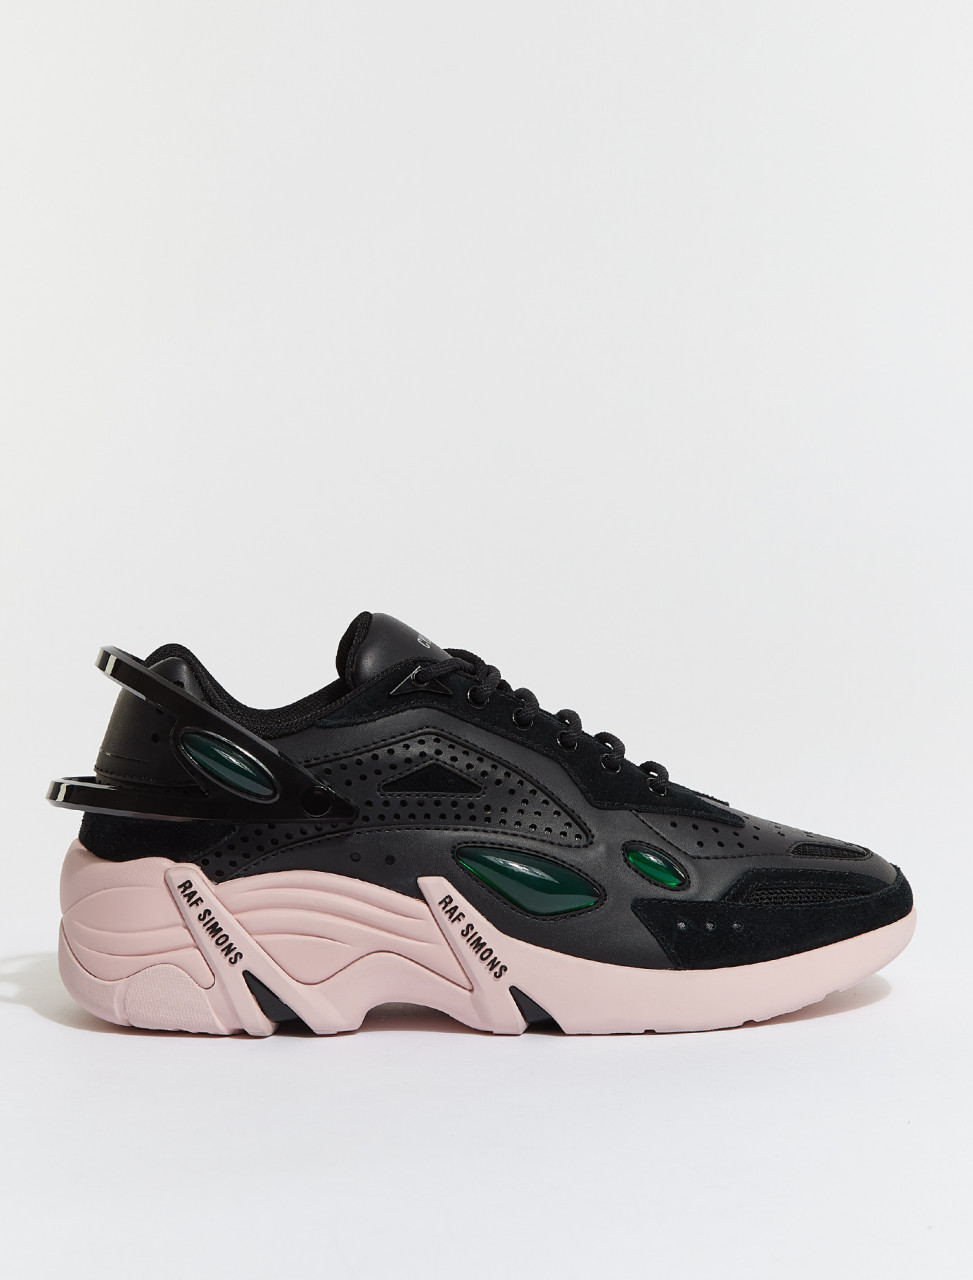 HR740003L-0131 RAF SIMONS RUNNER CYLON 21 BLACK PINK